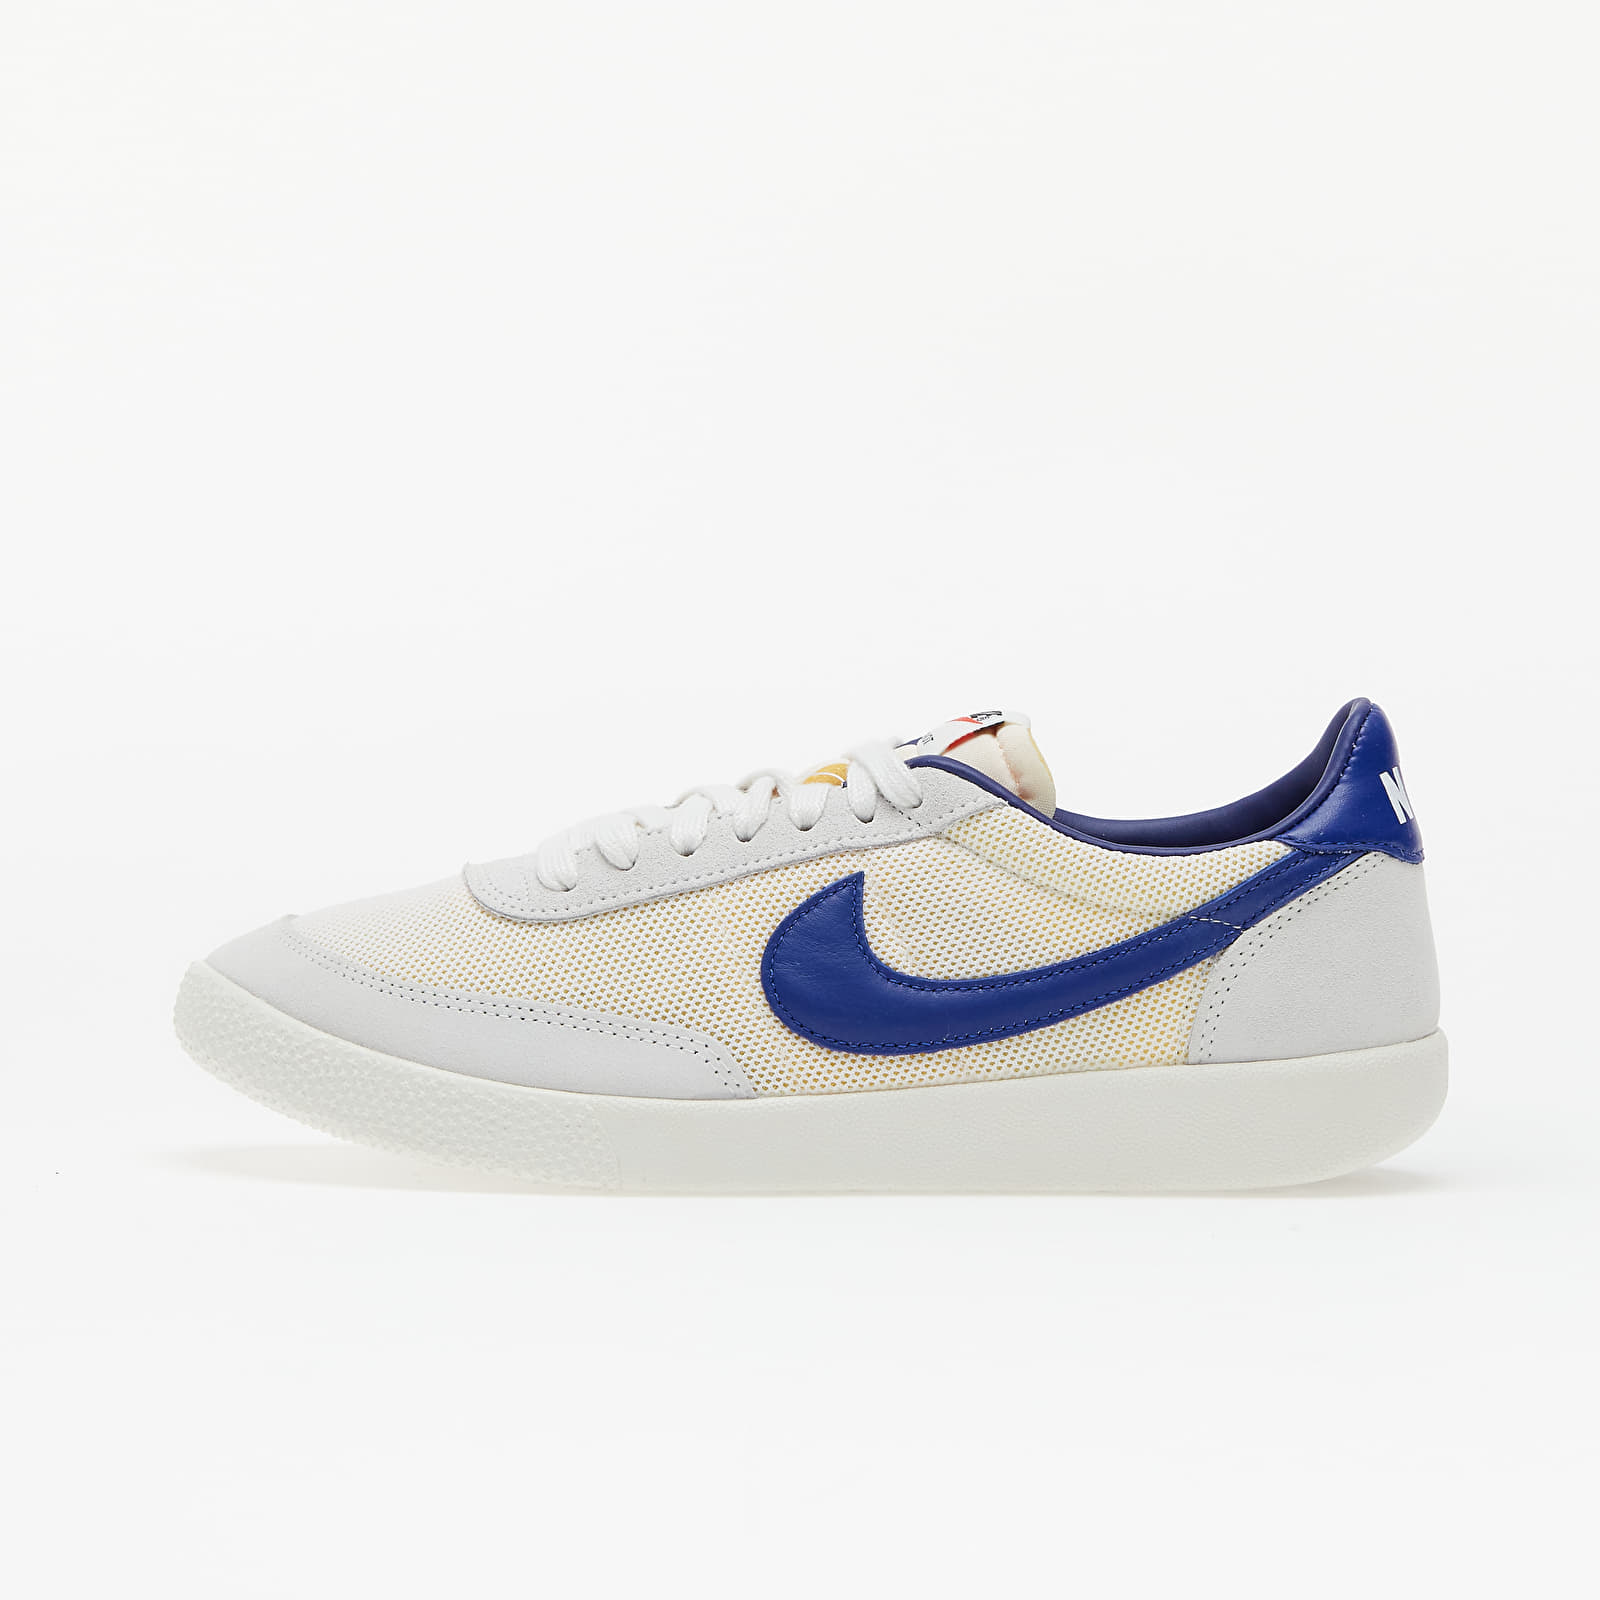 Nike Killshot OG Sail/ Deep Royal Blue-Black-Team Orange EUR 44.5